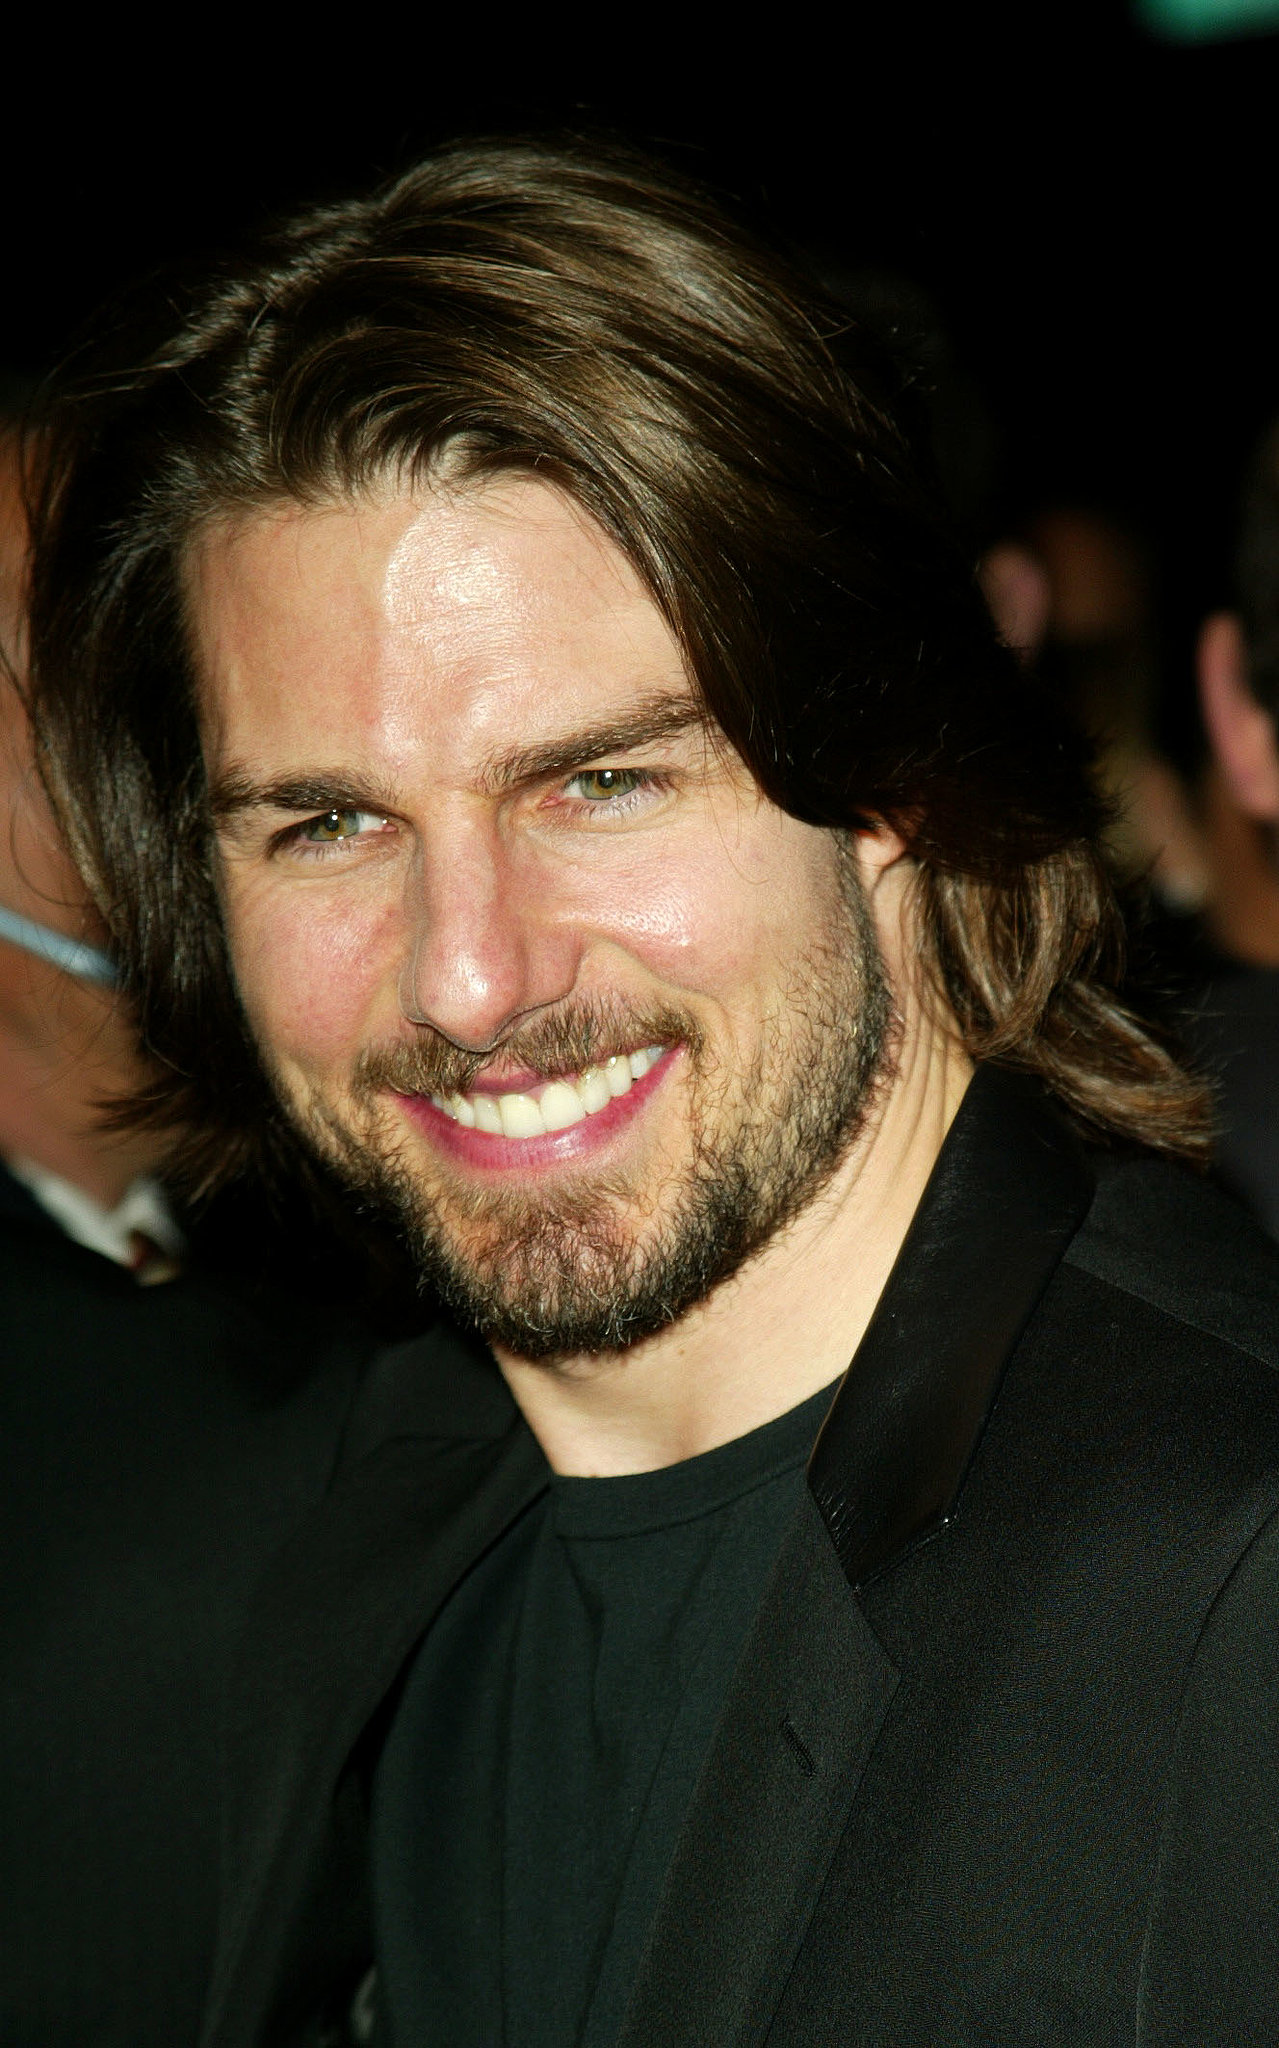 Tom Cruise sported some longer locks and a beard for the premiere of Narc in LA in October 20